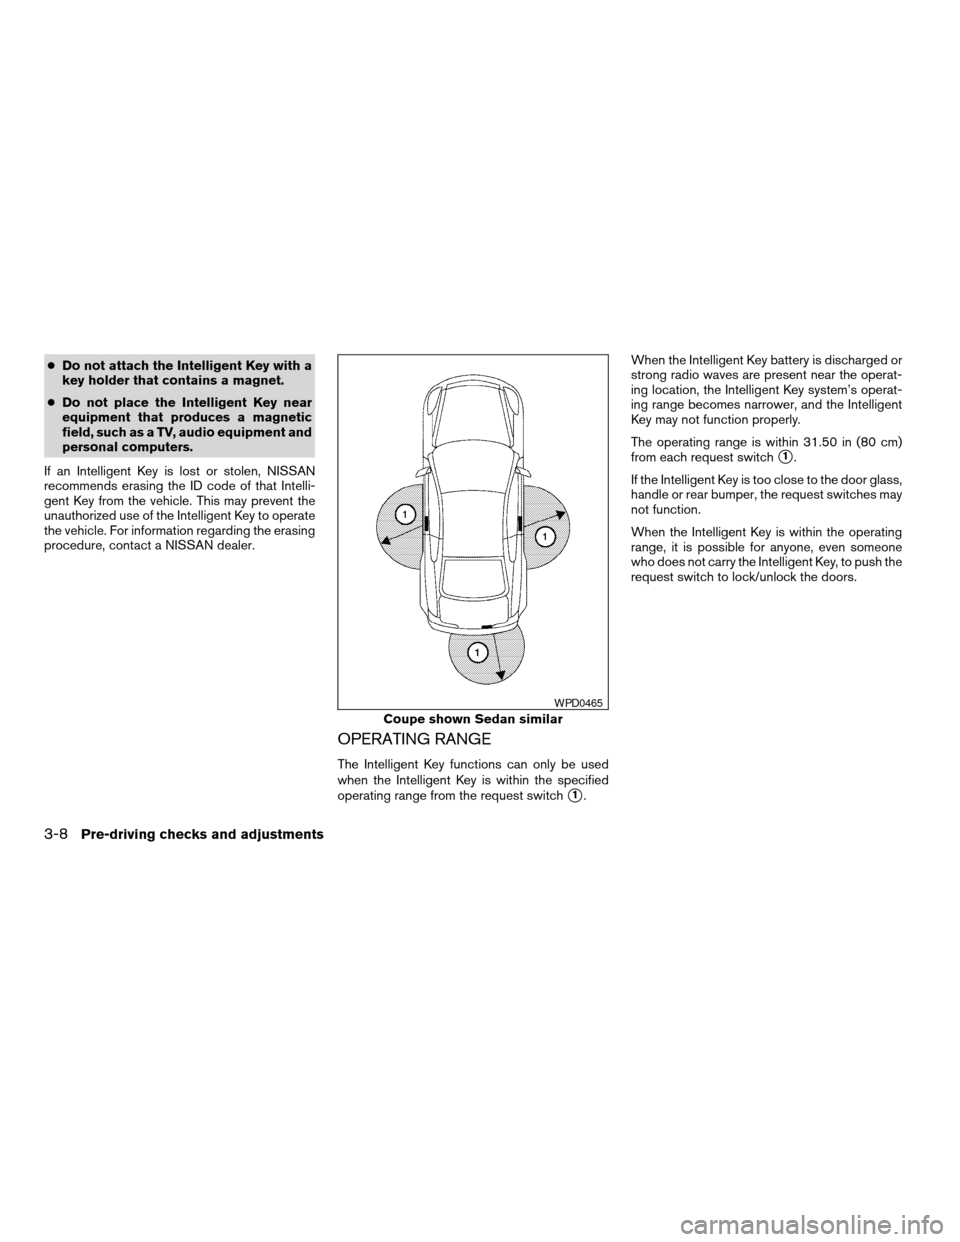 NISSAN ALTIMA COUPE 2009 D32 / 4.G Owners Manual, Page 140